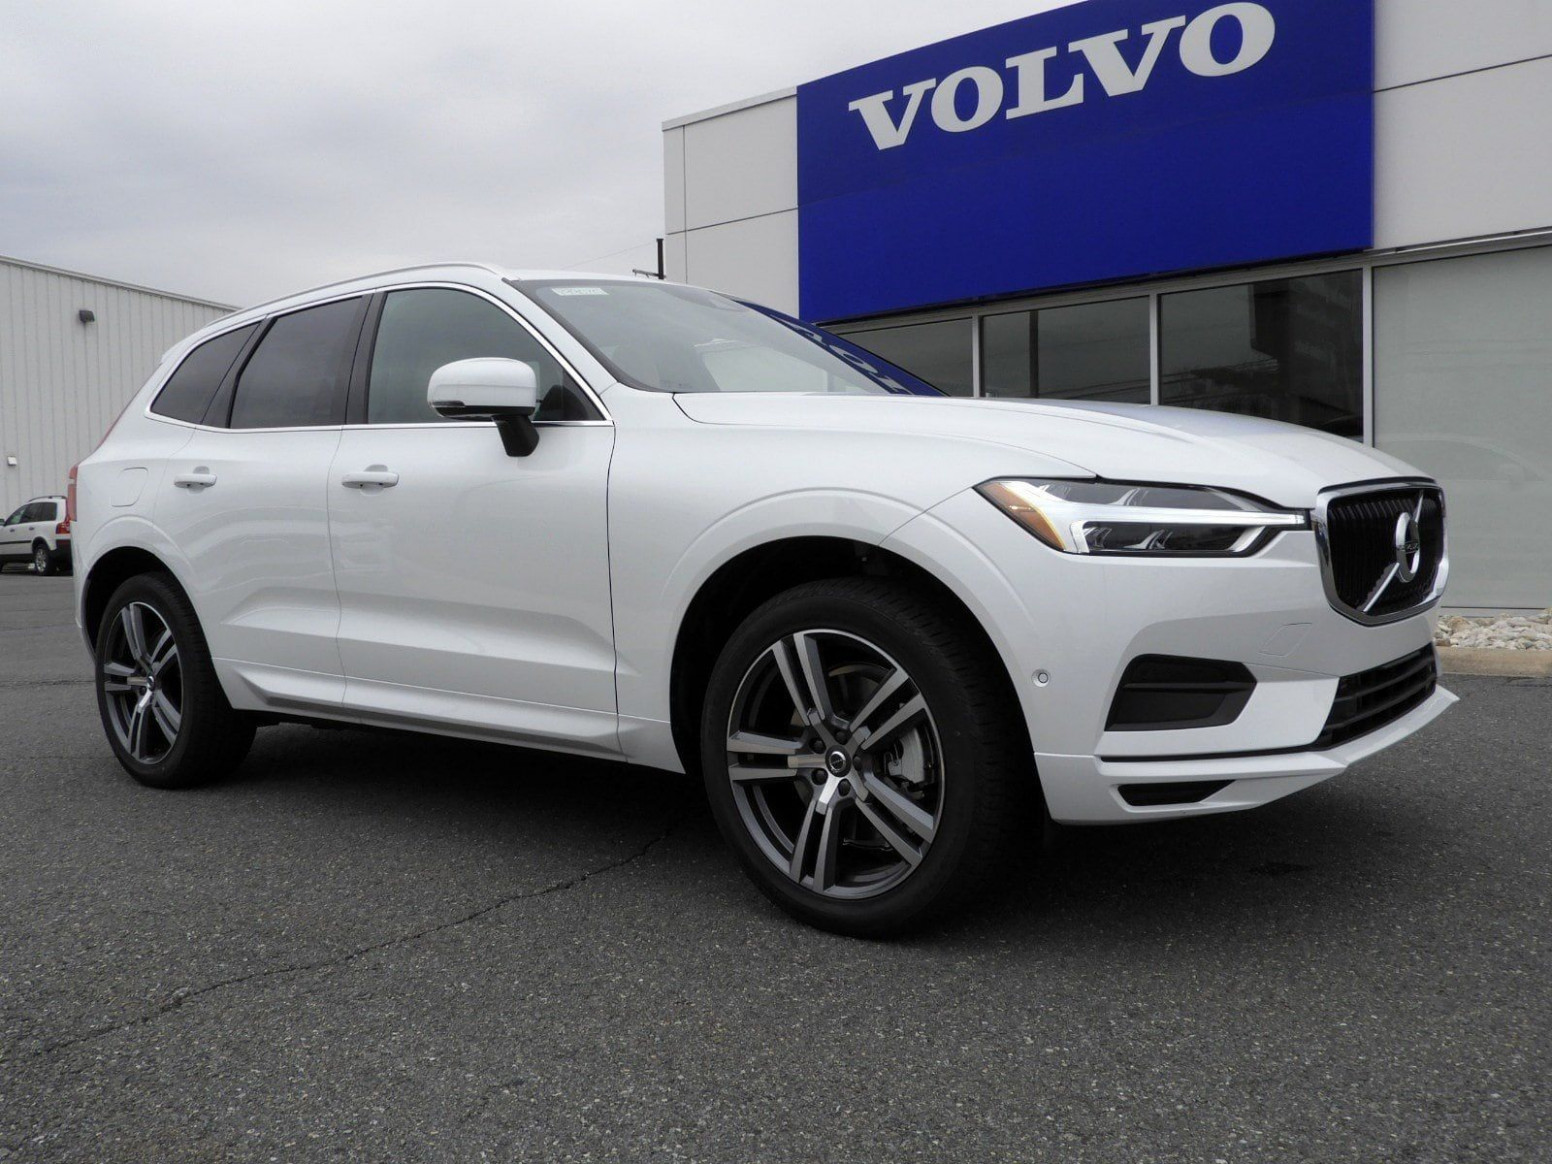 7 volvo xc7 lease questions New Review 7*7 - 7 volvo ..